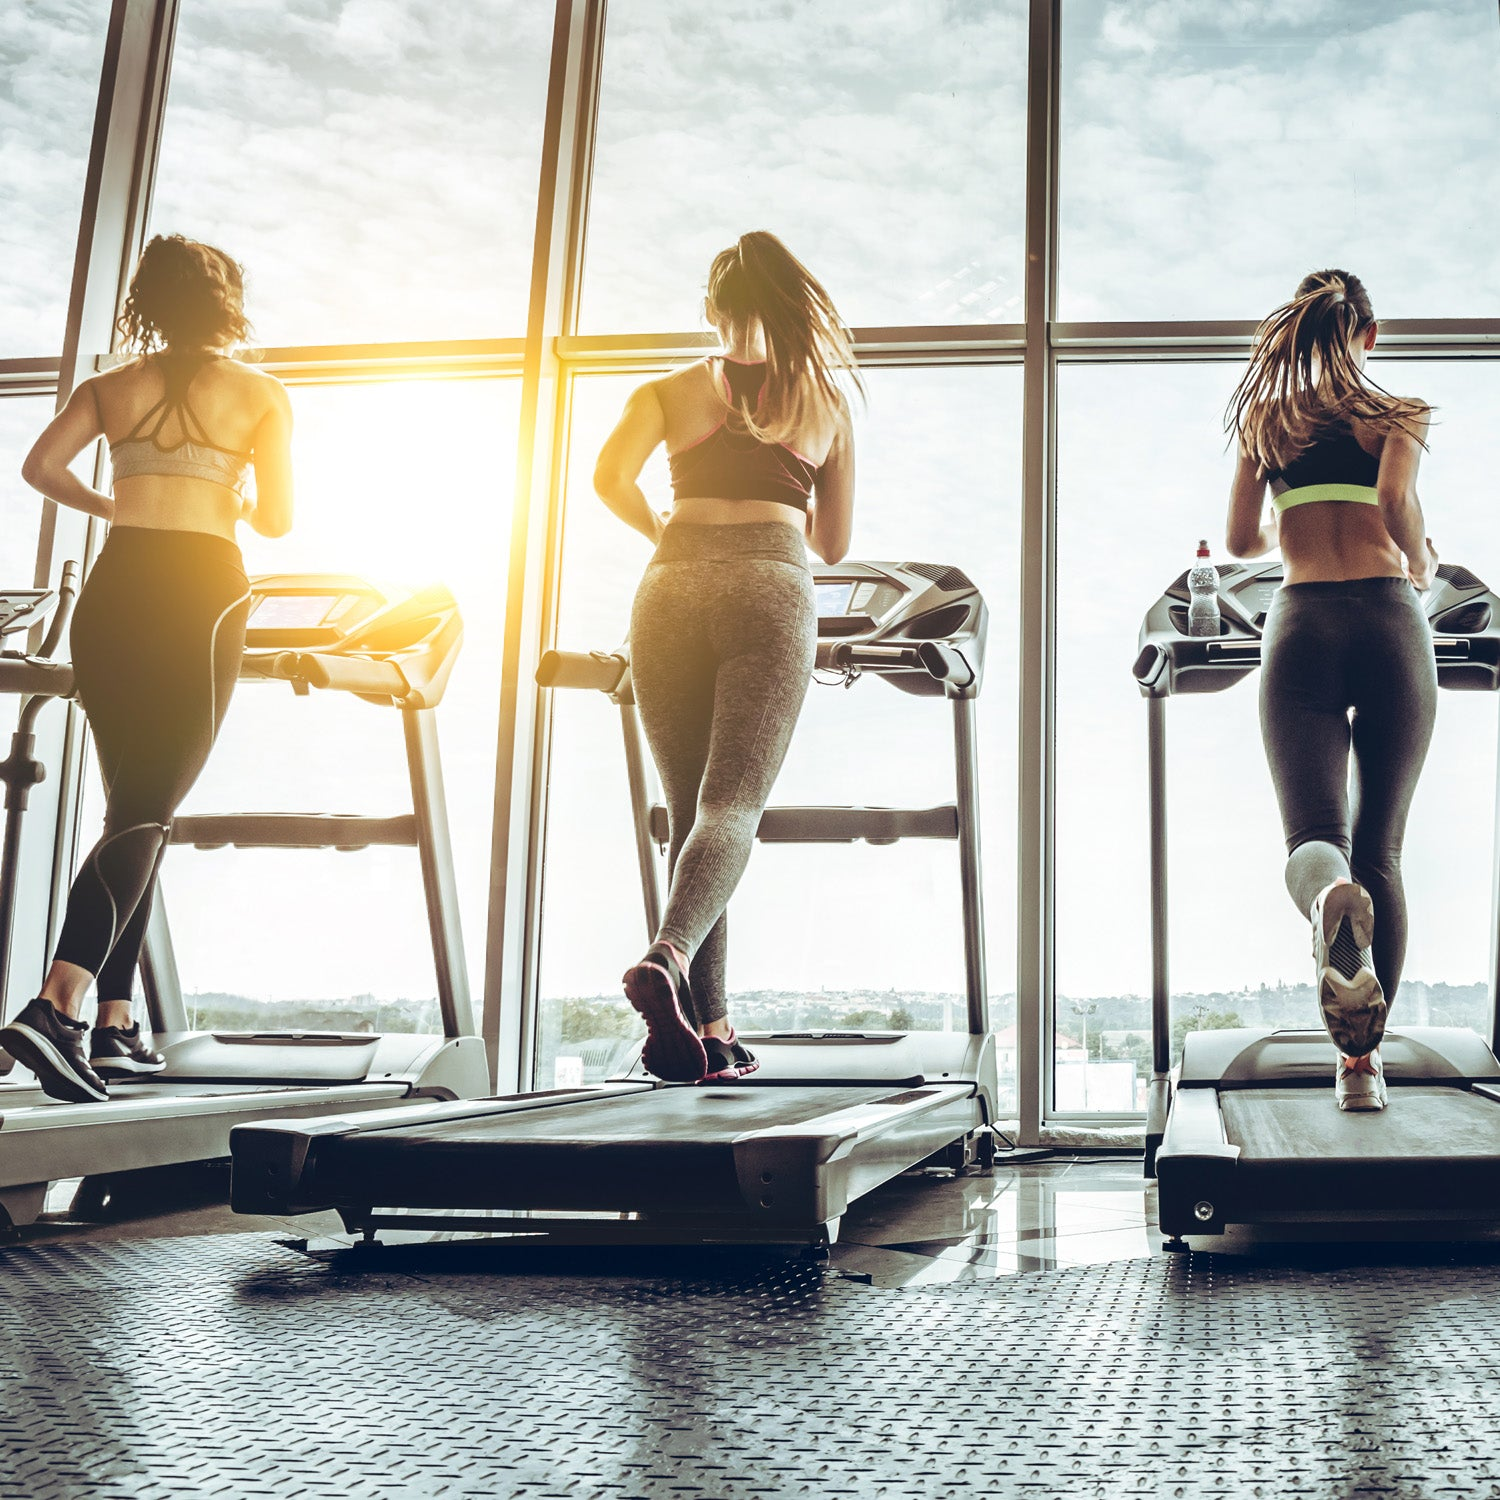 5 Of The Best Treadmills For A Home Gym